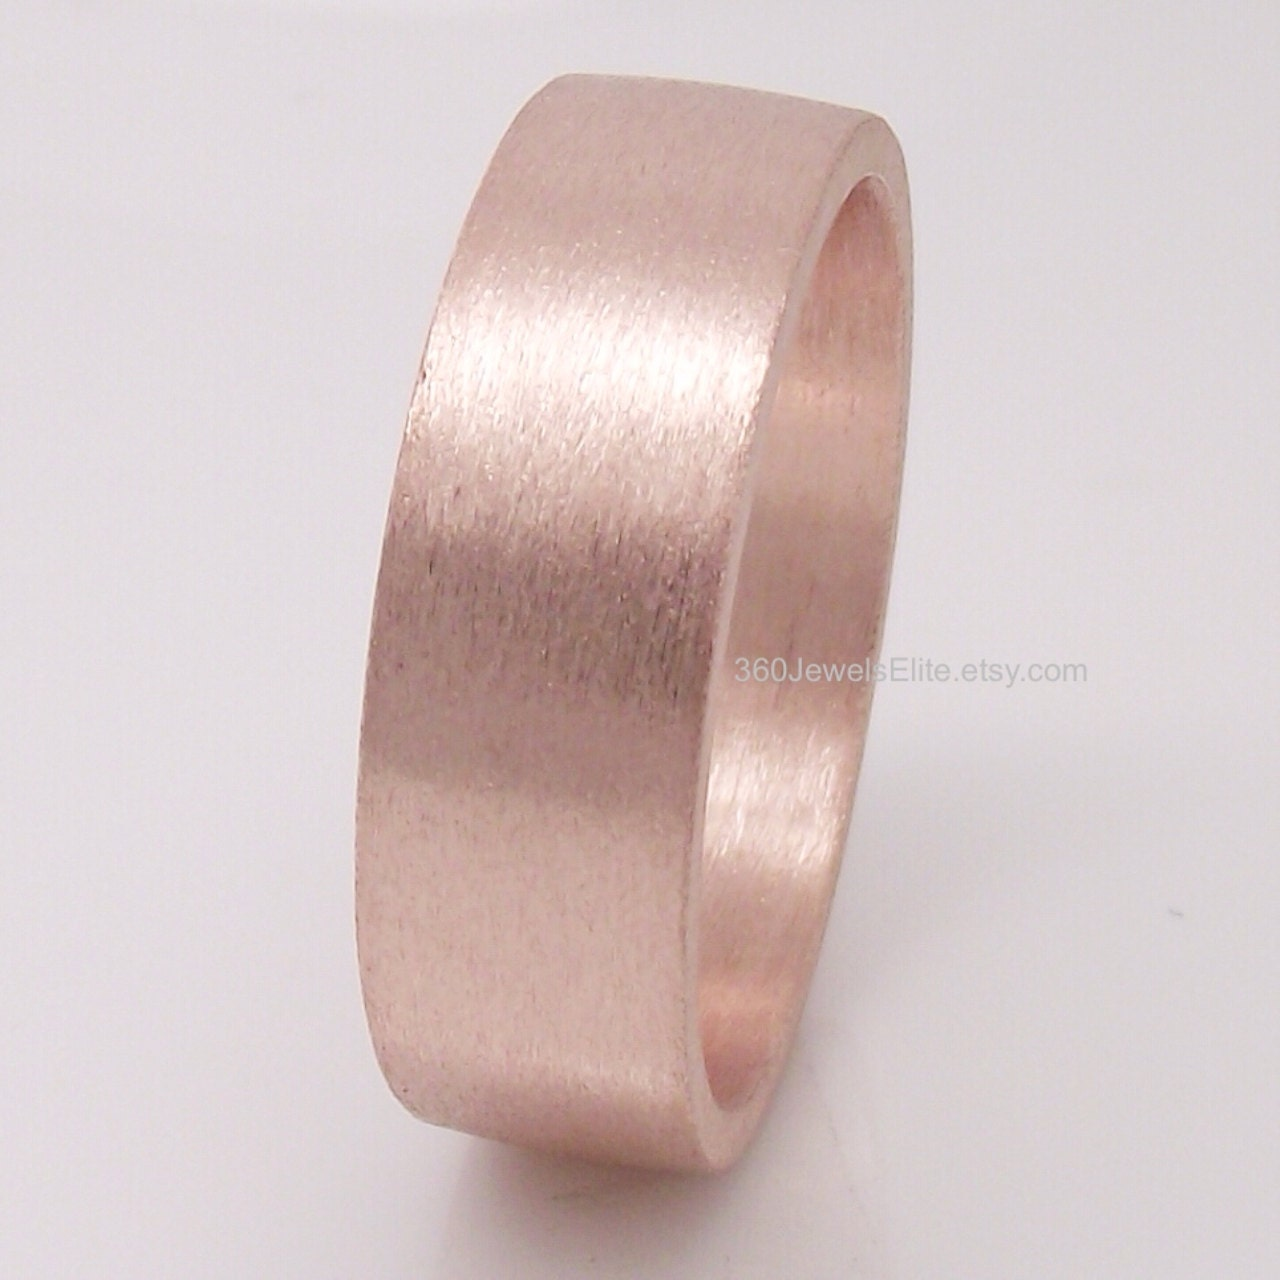 6mm Tube ring Rose Gold Plated Over 925 Sterling Silver